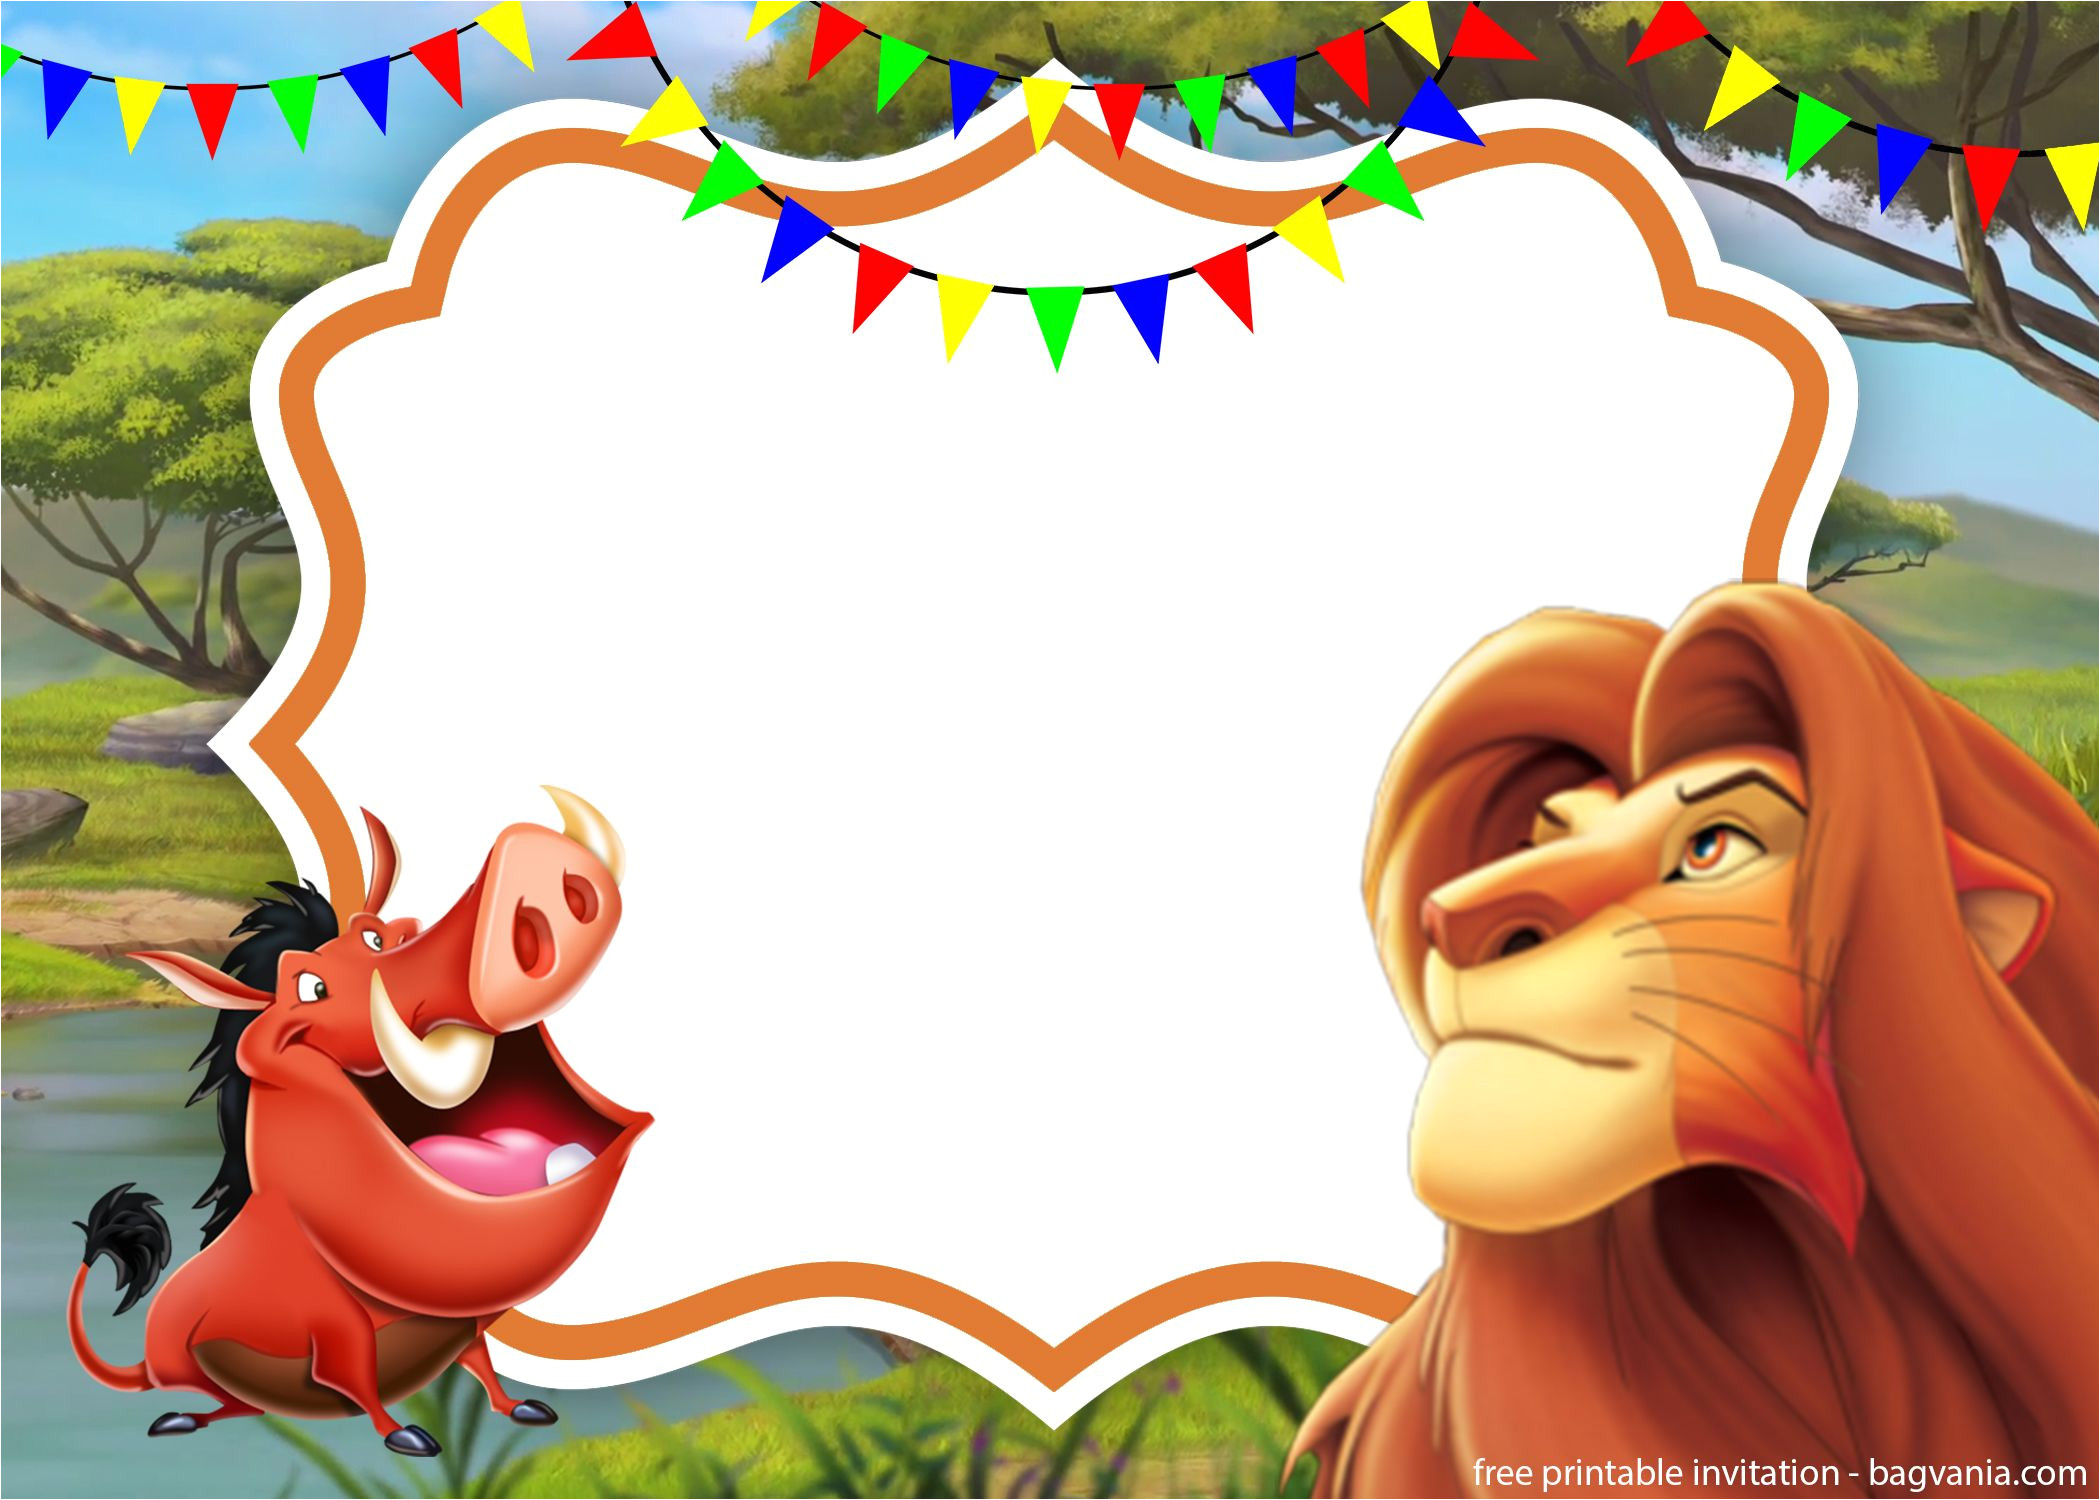 simba lion king invitation template perfect for parties in the yard